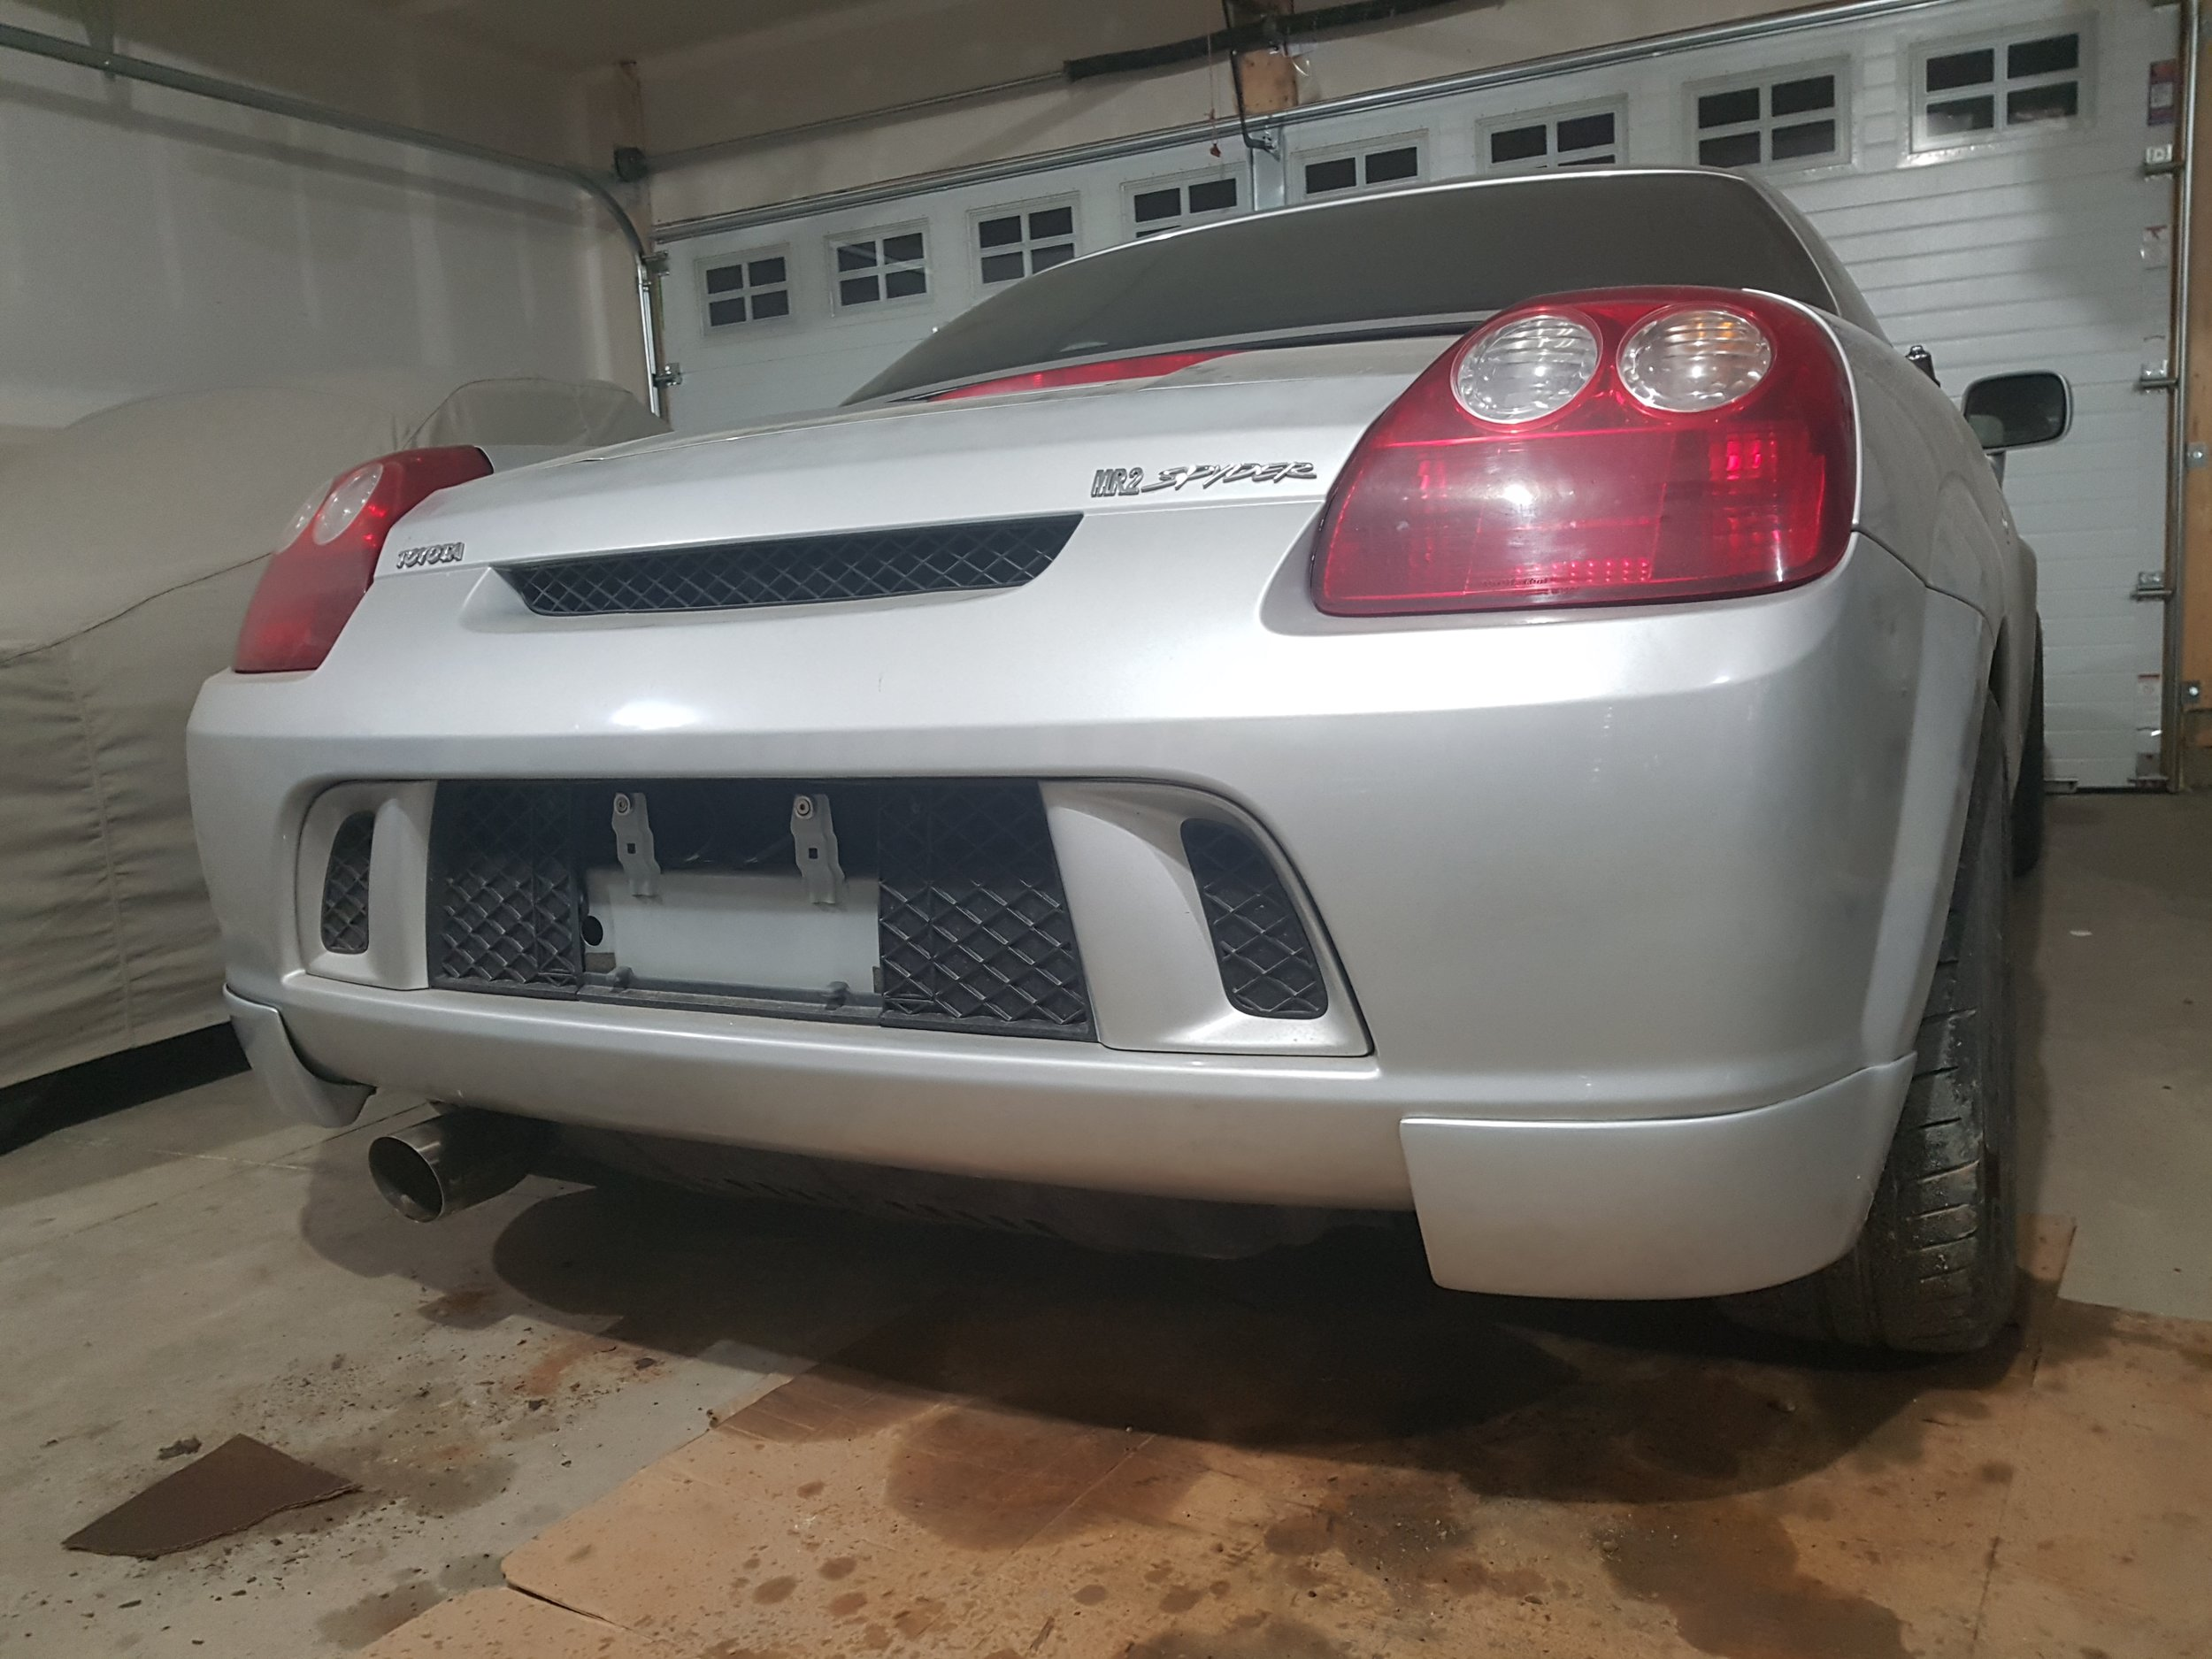 Installed a catback and shot of the rear strakes. Shipped all the way from Russia!